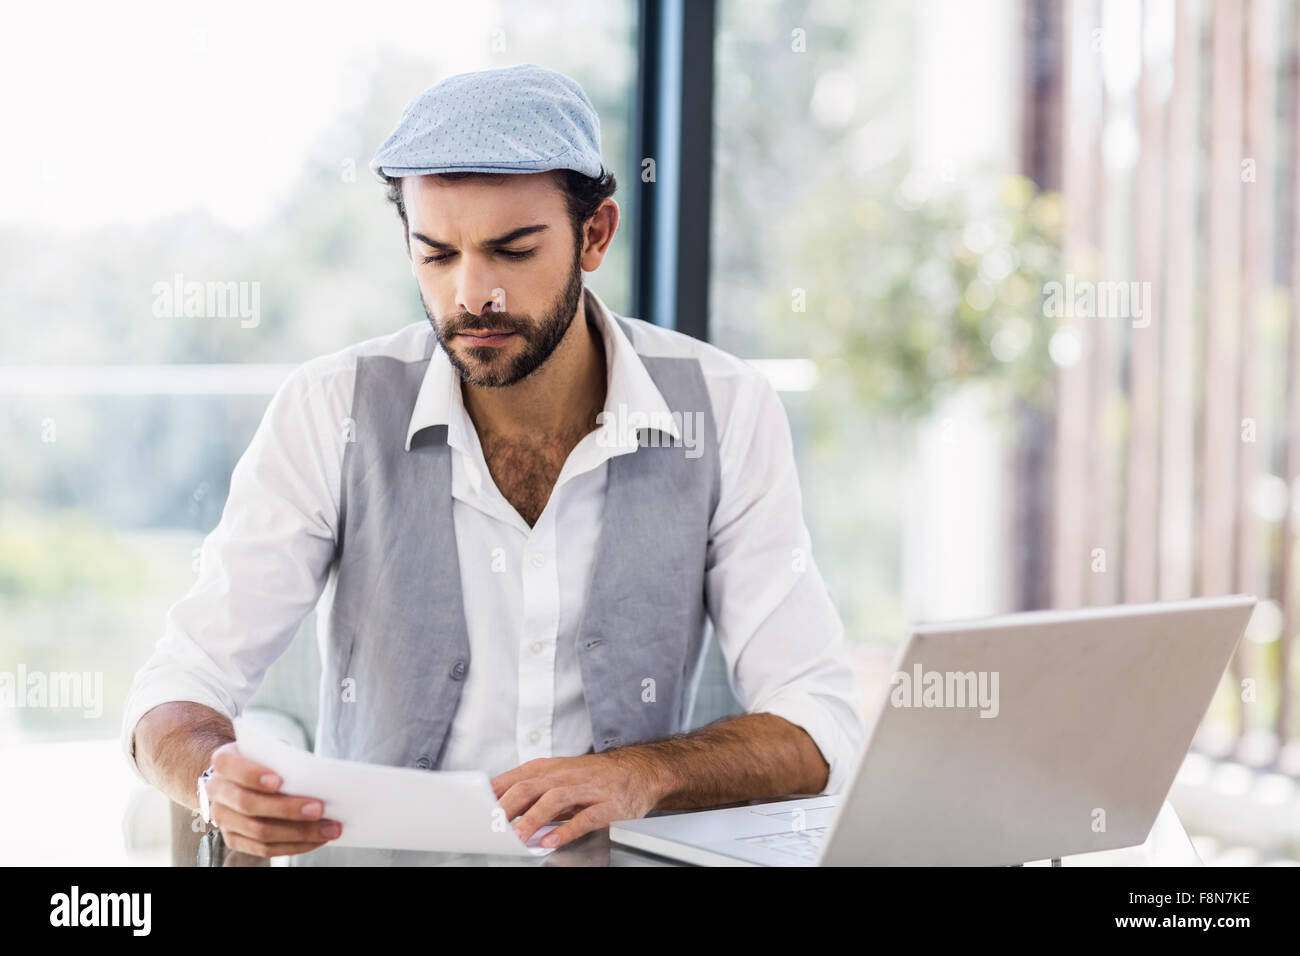 Focused man looking at document - Stock Image